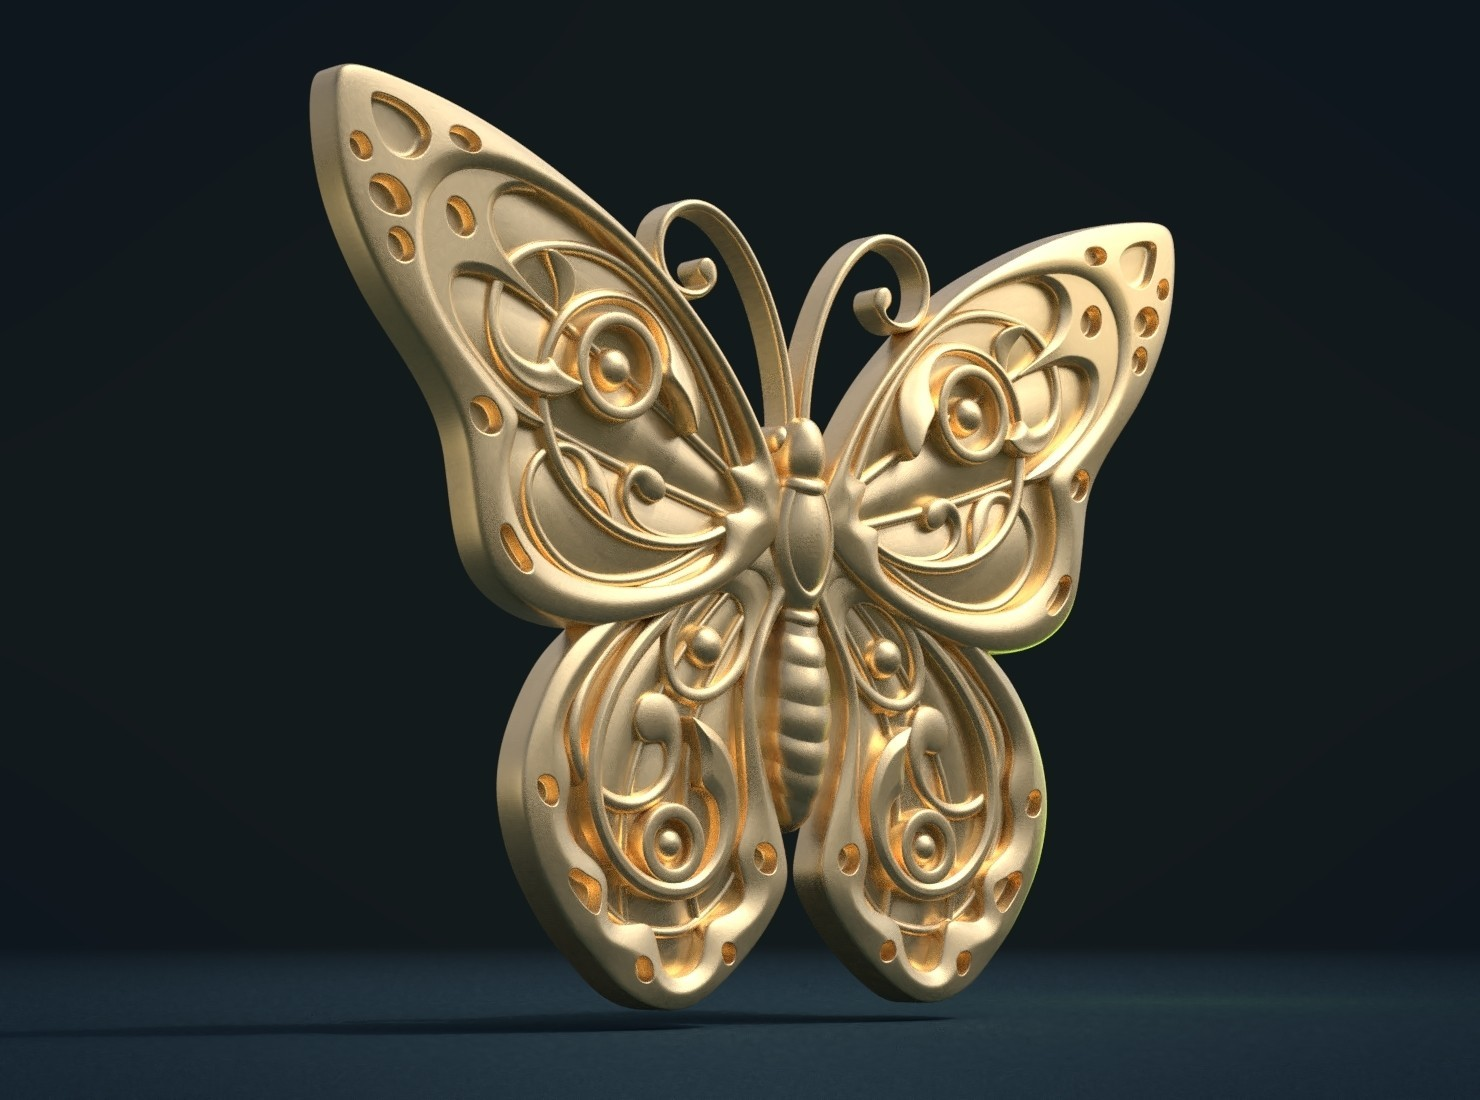 Butterfly_G_Cycles-0002.jpg Download STL file Butterfly relief • Model to 3D print, Skazok